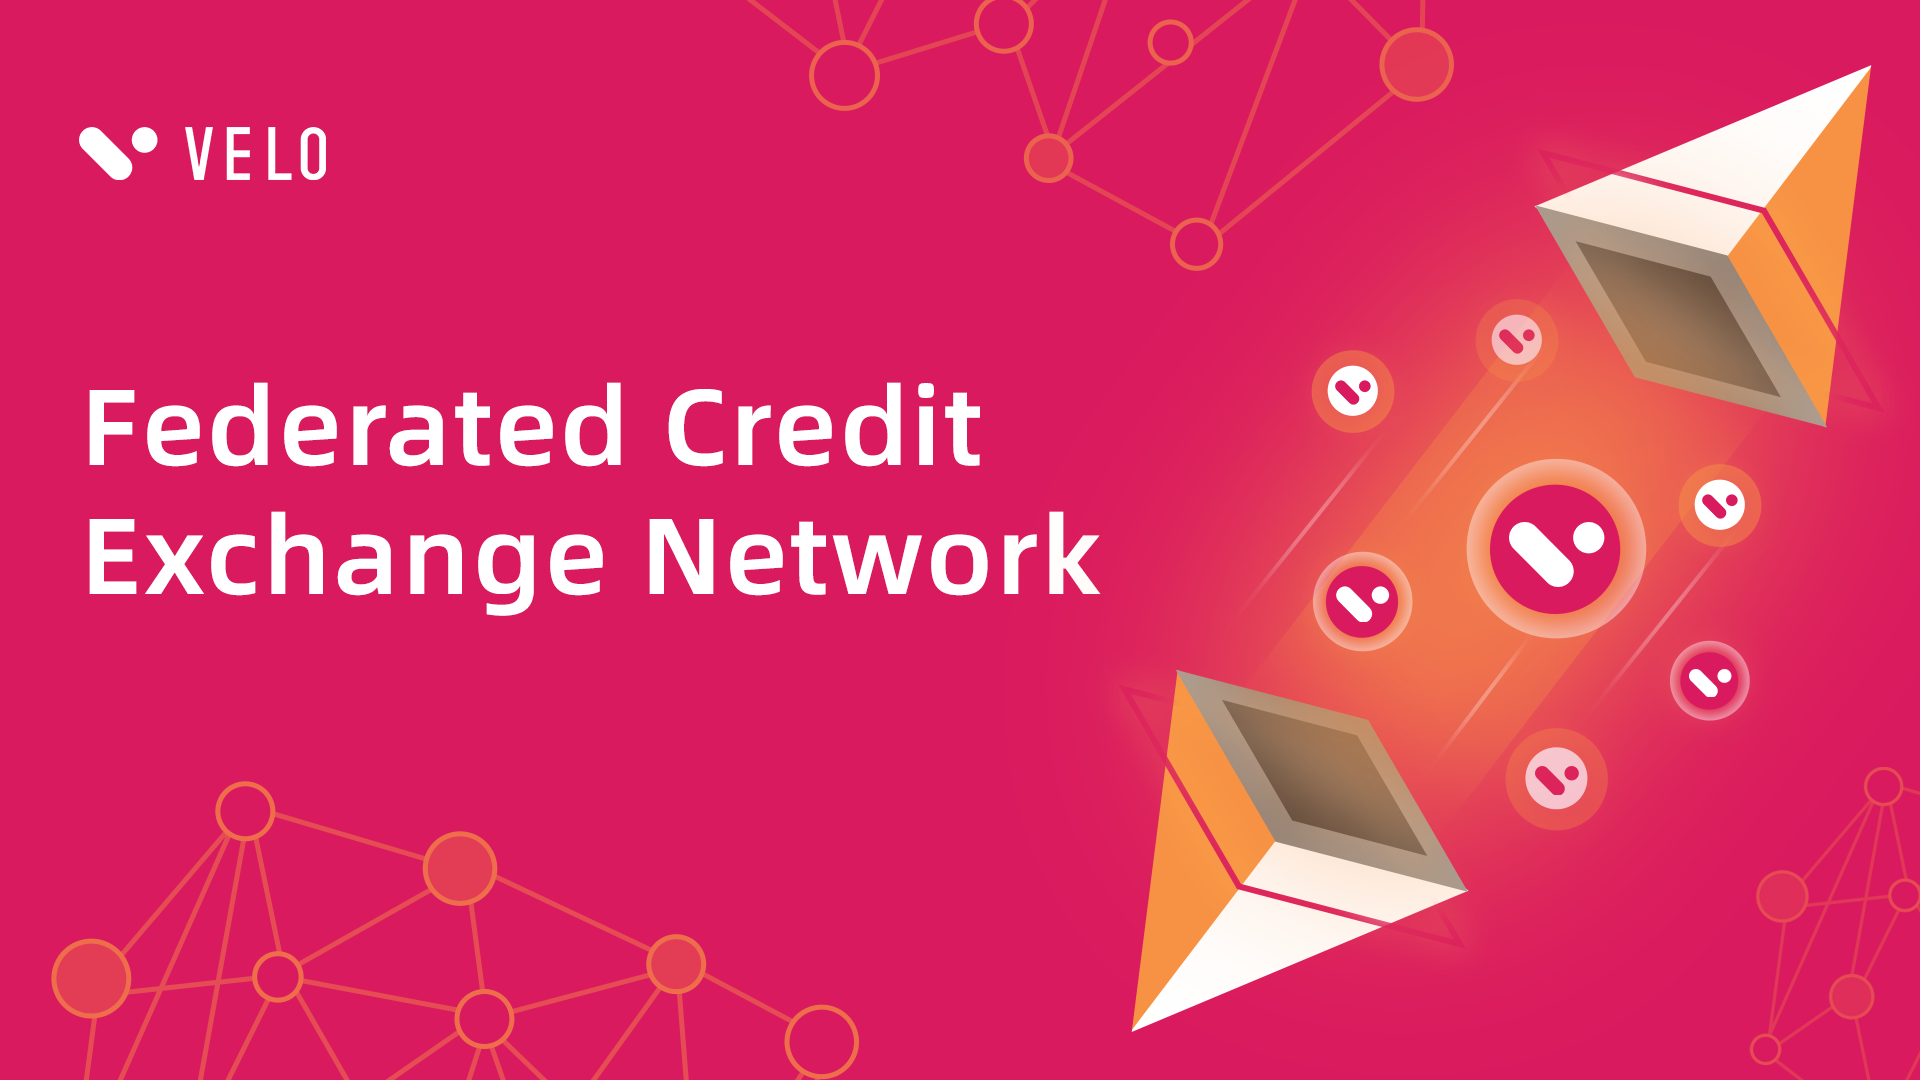 [SPONSORED] Velo Protocol powering the world's premiere Federated Credit Exchange Network